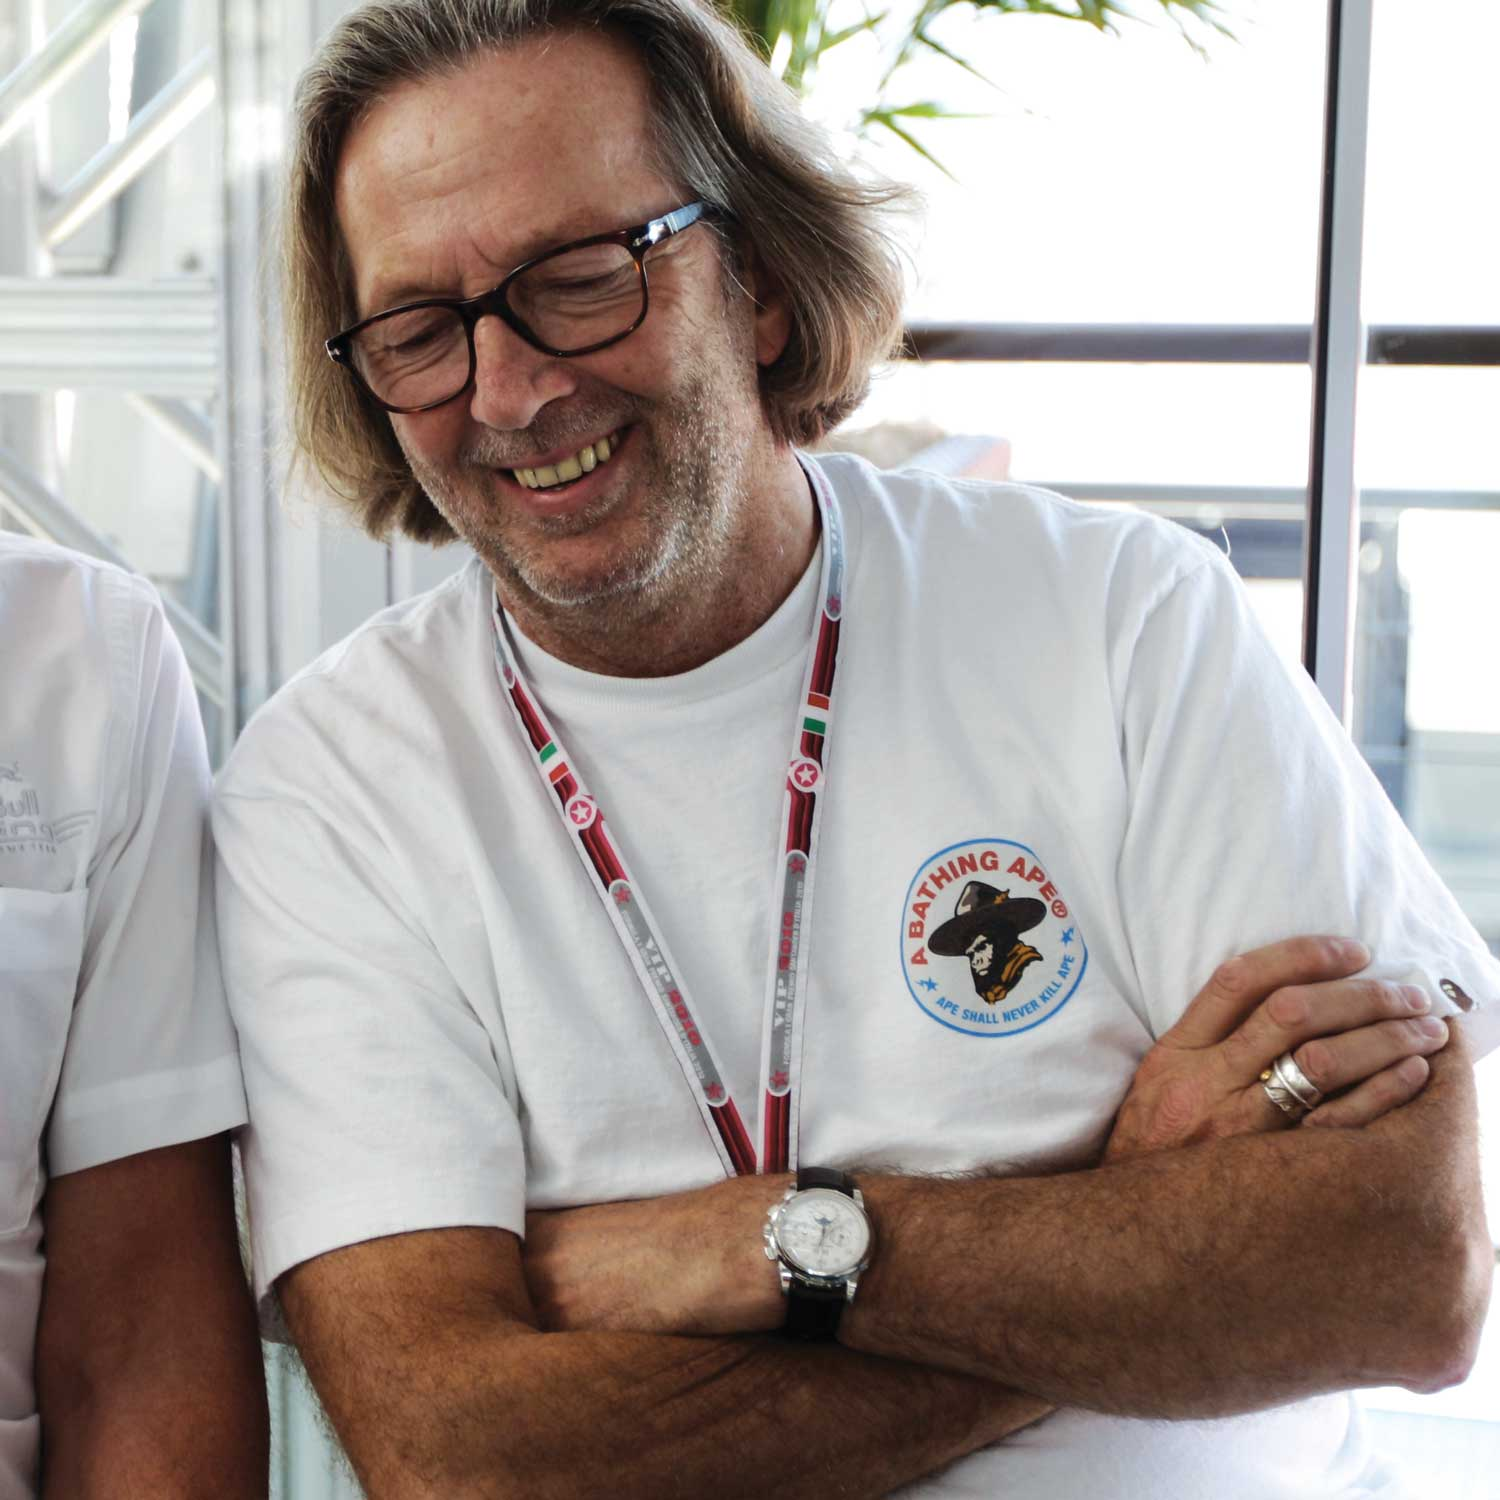 Singer, musician Eric Clapton wearing what is likely his unique Patek Philippe 5970G with applied Breguet numerals, and amusingly a Bathing Ape t-shirt; here Clapton was at the Formula One Grand Prix at the Autodromo Nazionale di Monza on September 11, 2010 in Monza, Italy. (Photo by Mark Thompson/Getty Images)